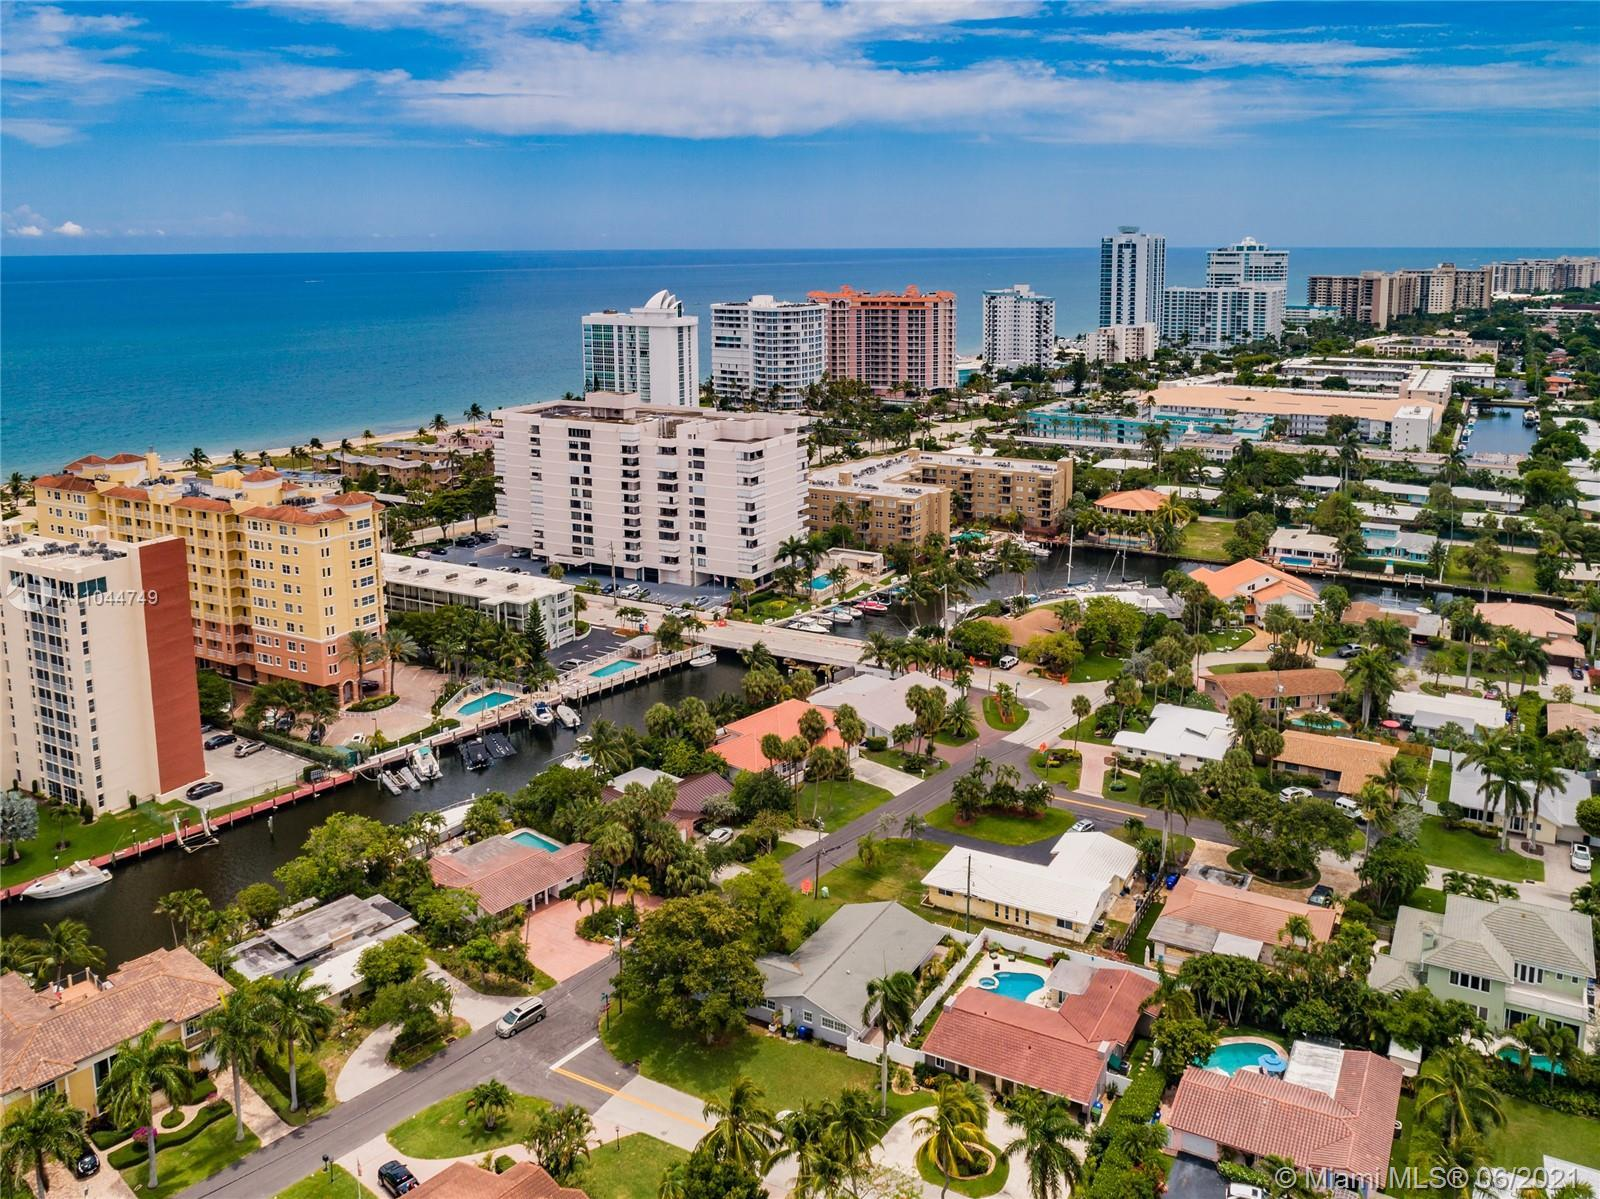 LIVE THE VACATION LIFESTYLE ALL YEAR ROUND!   STEPS TO YOUR OWN DEEDED BEACH ACCESS, EL MAR BEACH CL